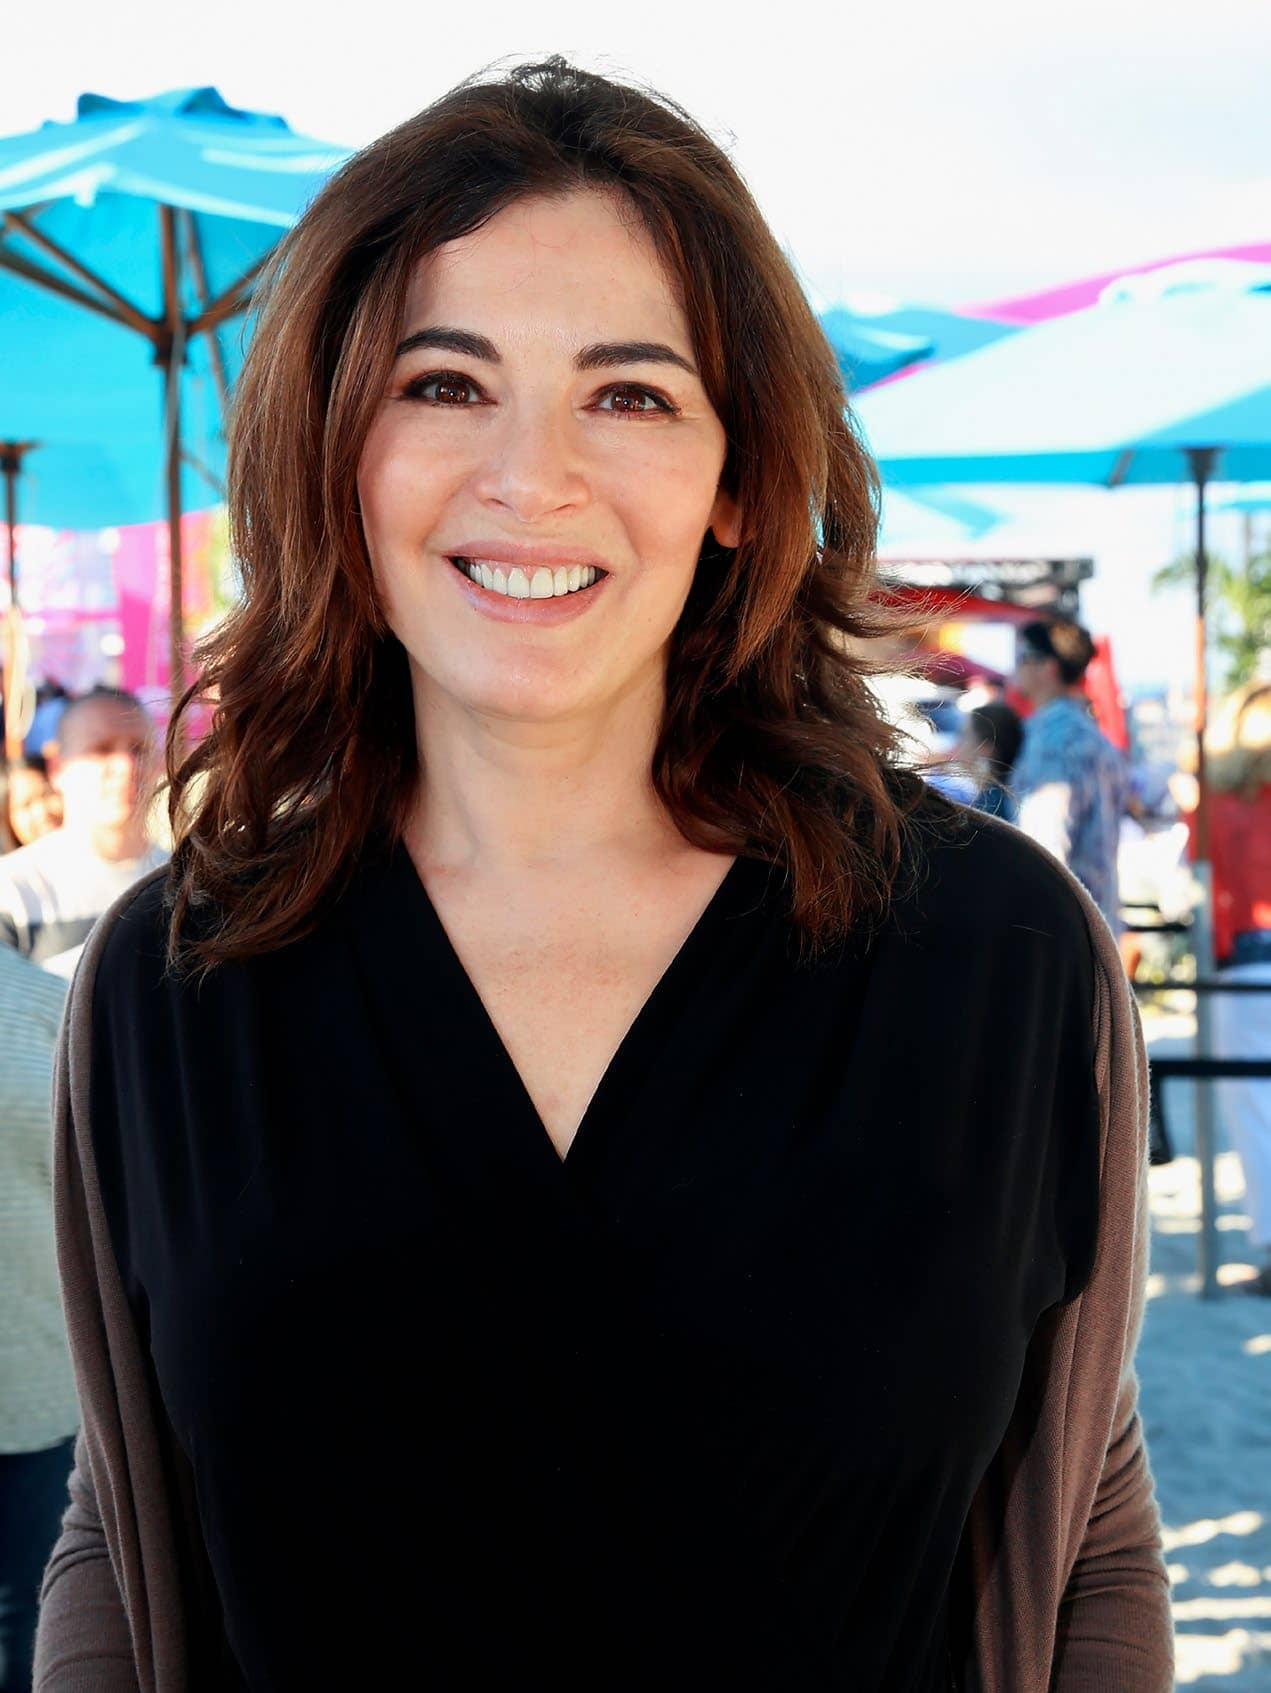 CLEANSING HER PALATE Nigella's new direction at 60